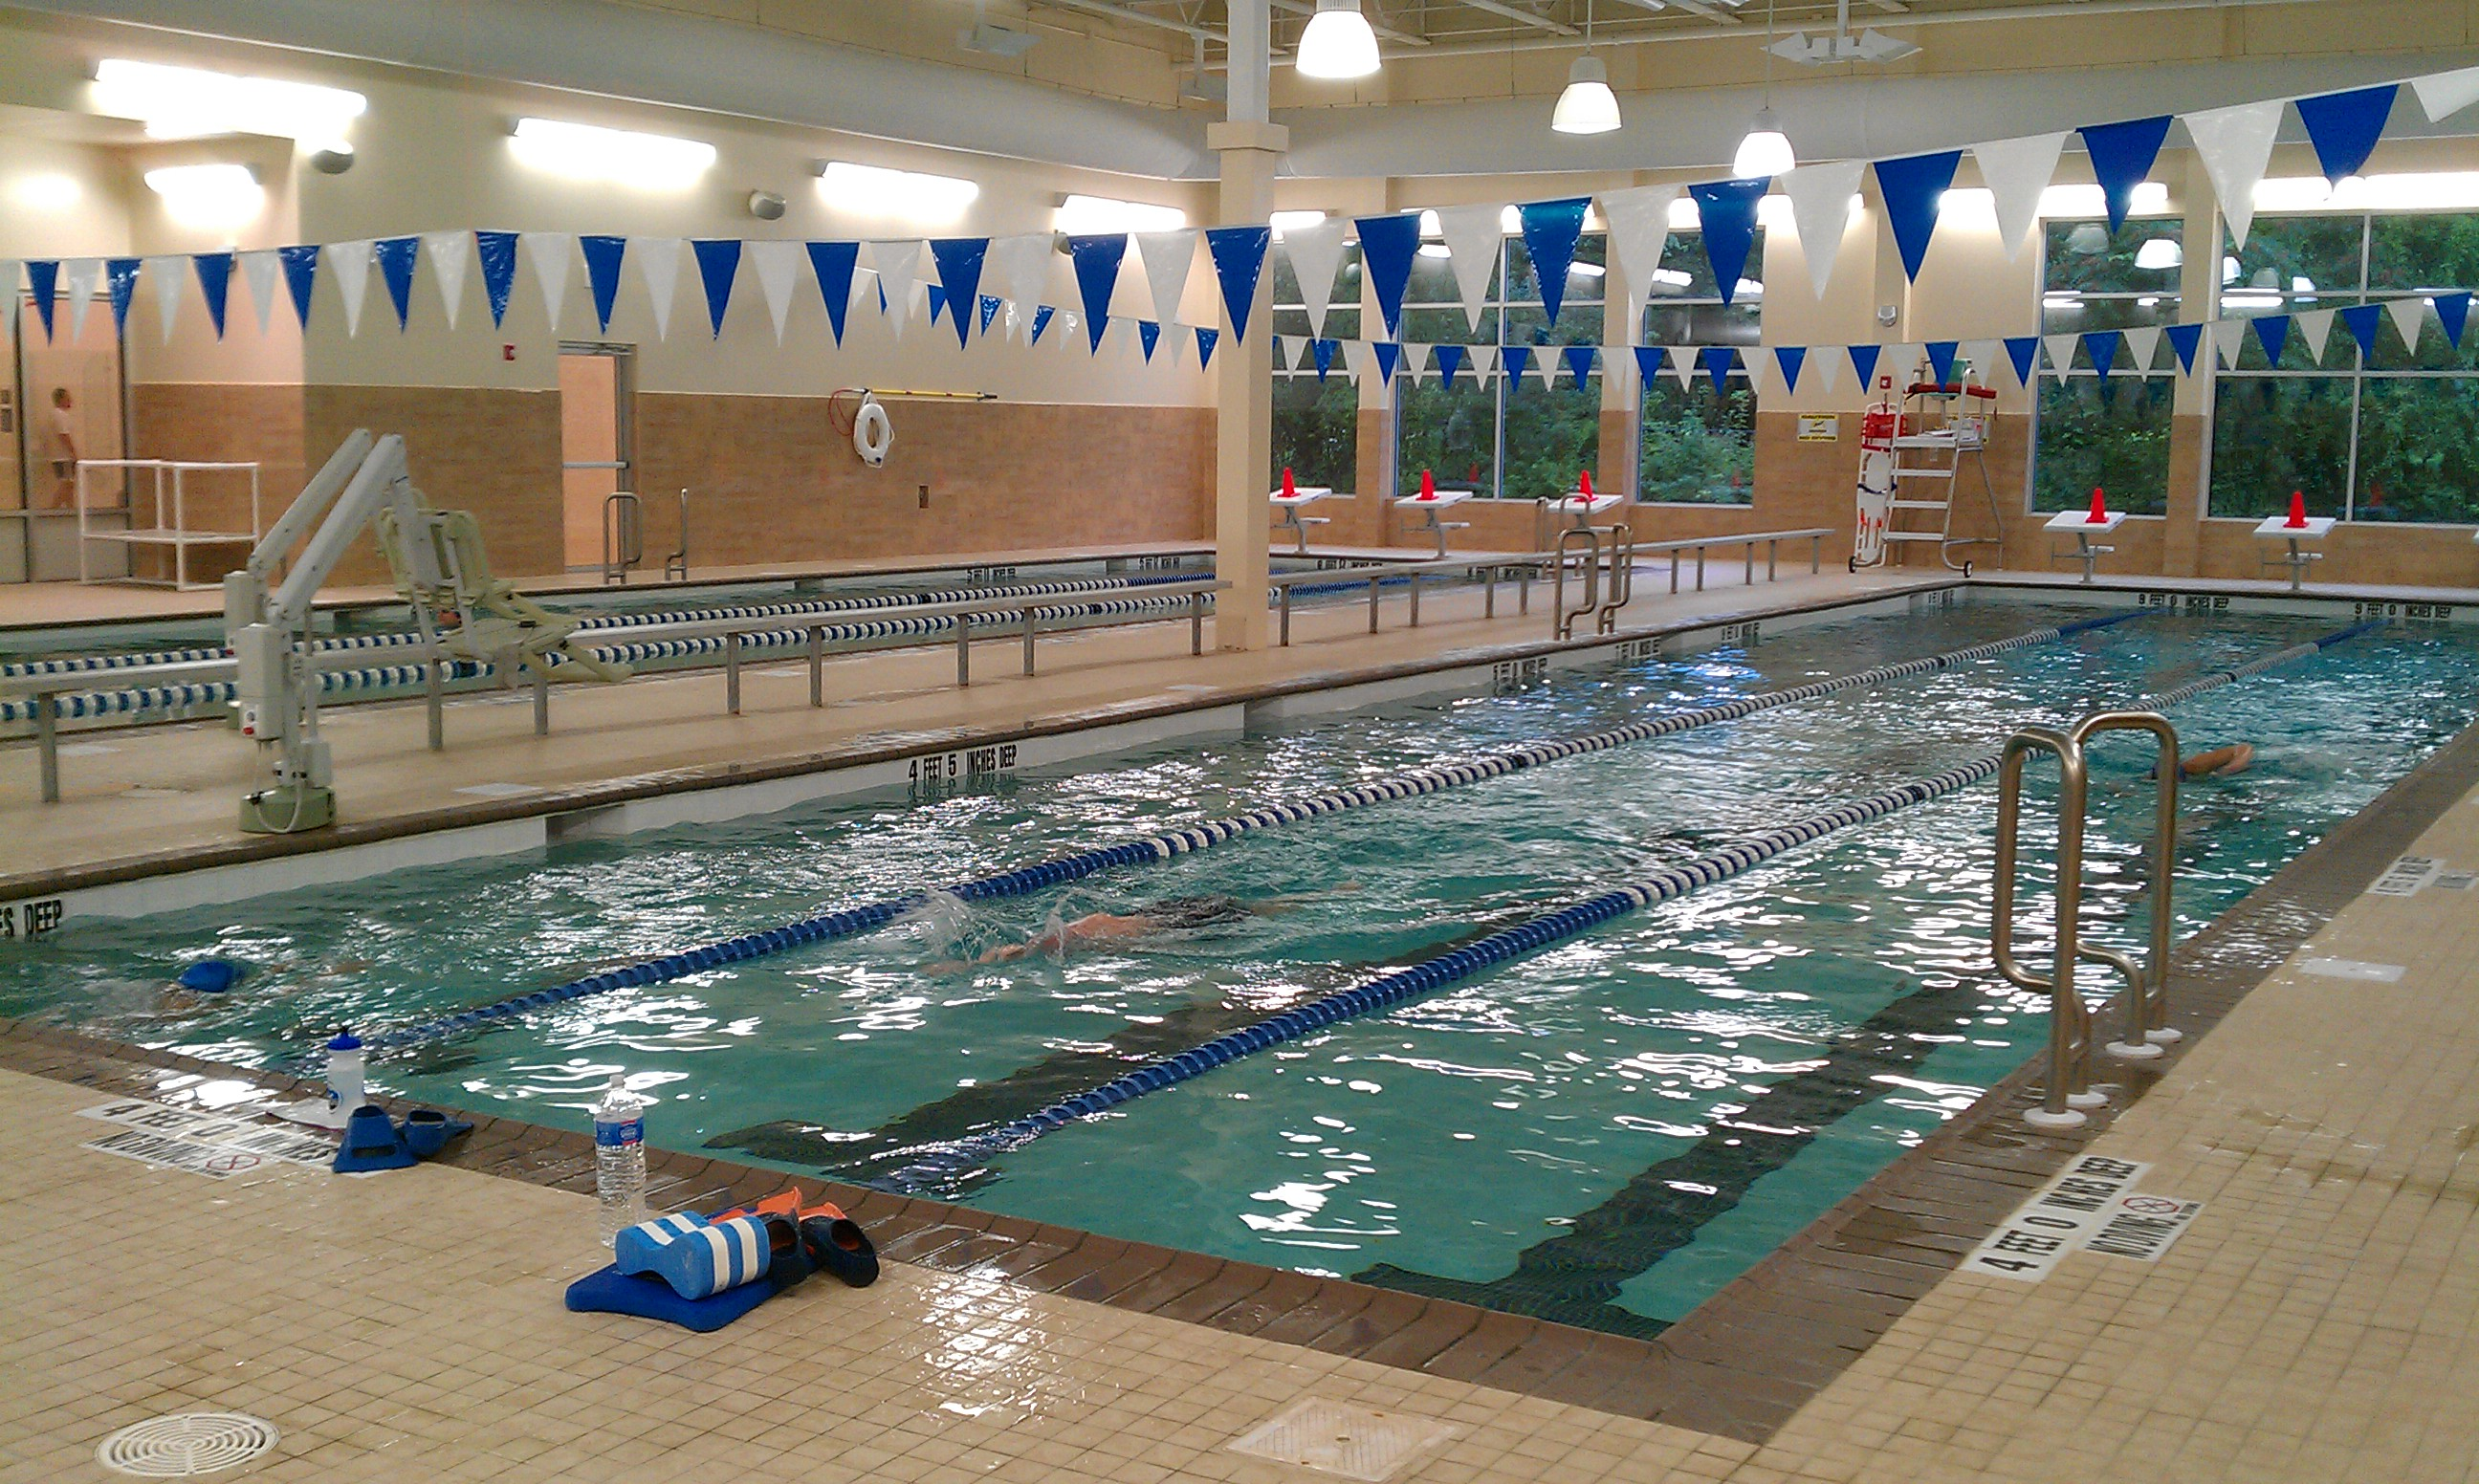 Motivational lymphedema diary by britta vander linden for Salt water pool